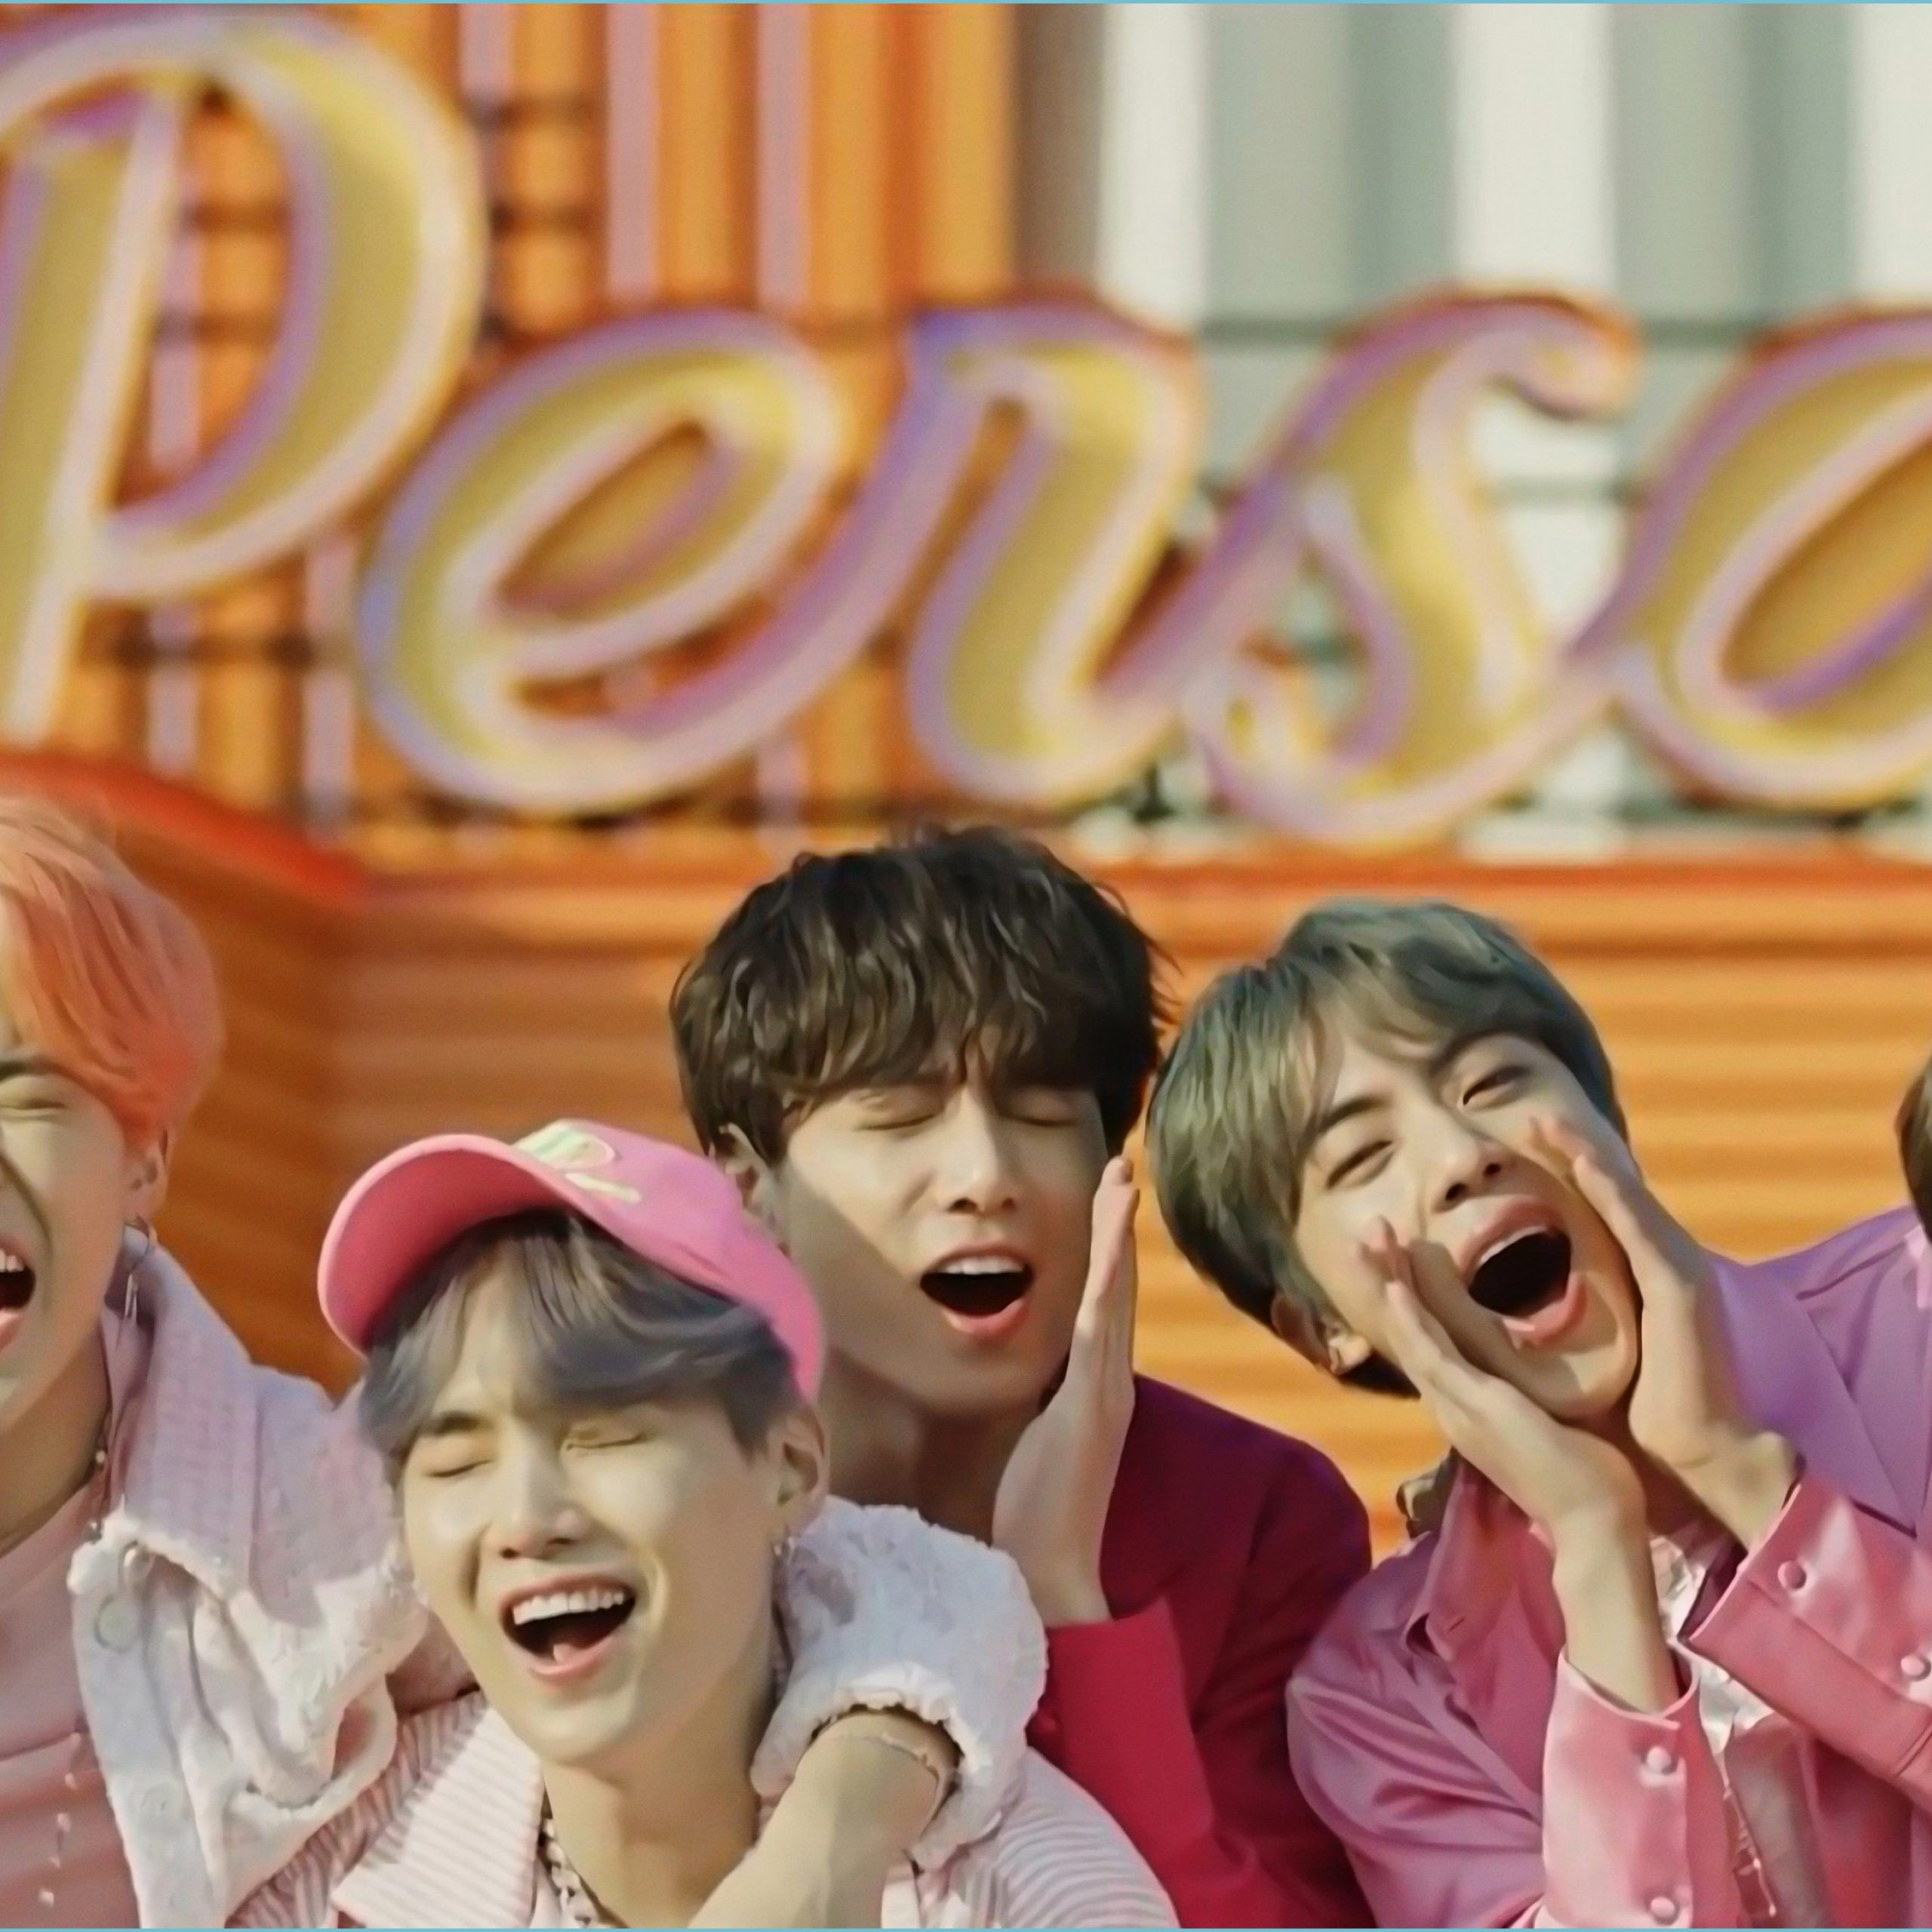 Why It Is Not The Best Time For Bts Desktop Wallpaper Hd Bts Desktop Wallpaper Hd Bts Wallpaper Desktop Bts Laptop Wallpaper Desktop Wallpapers Tumblr